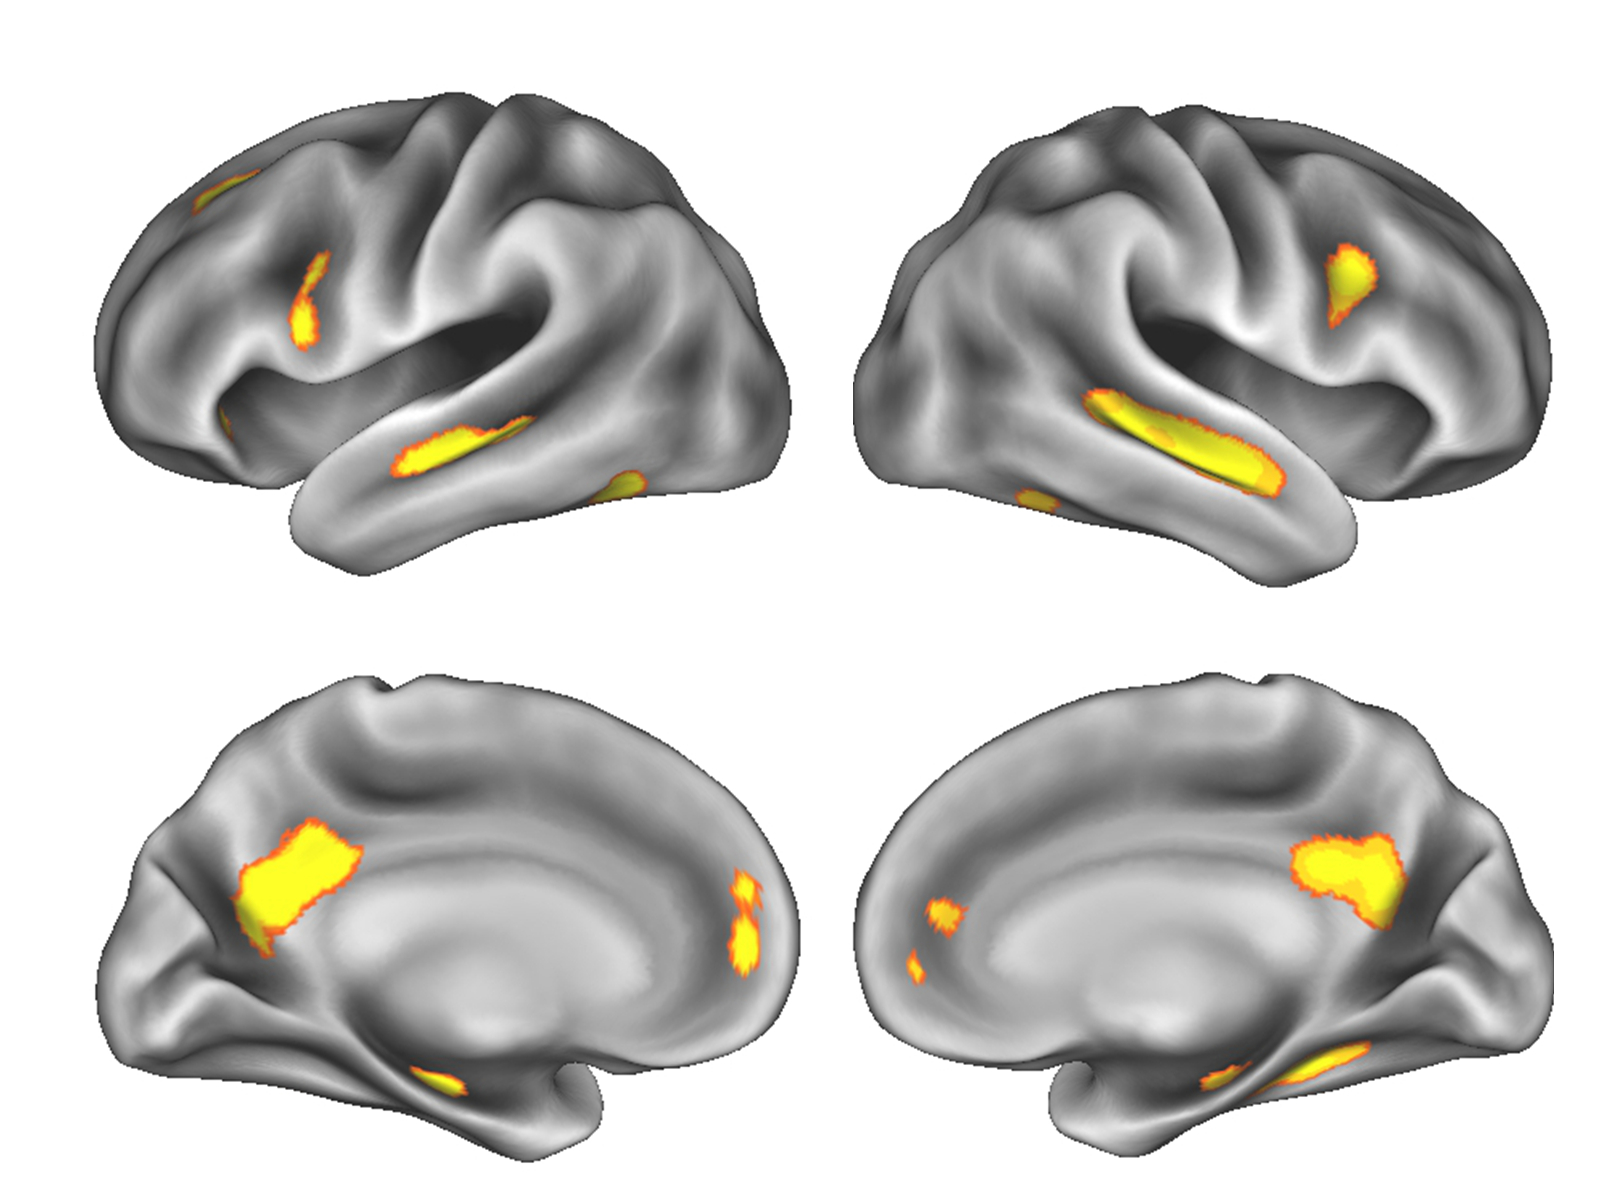 Image of gray matter changes in the brain during pregnancy